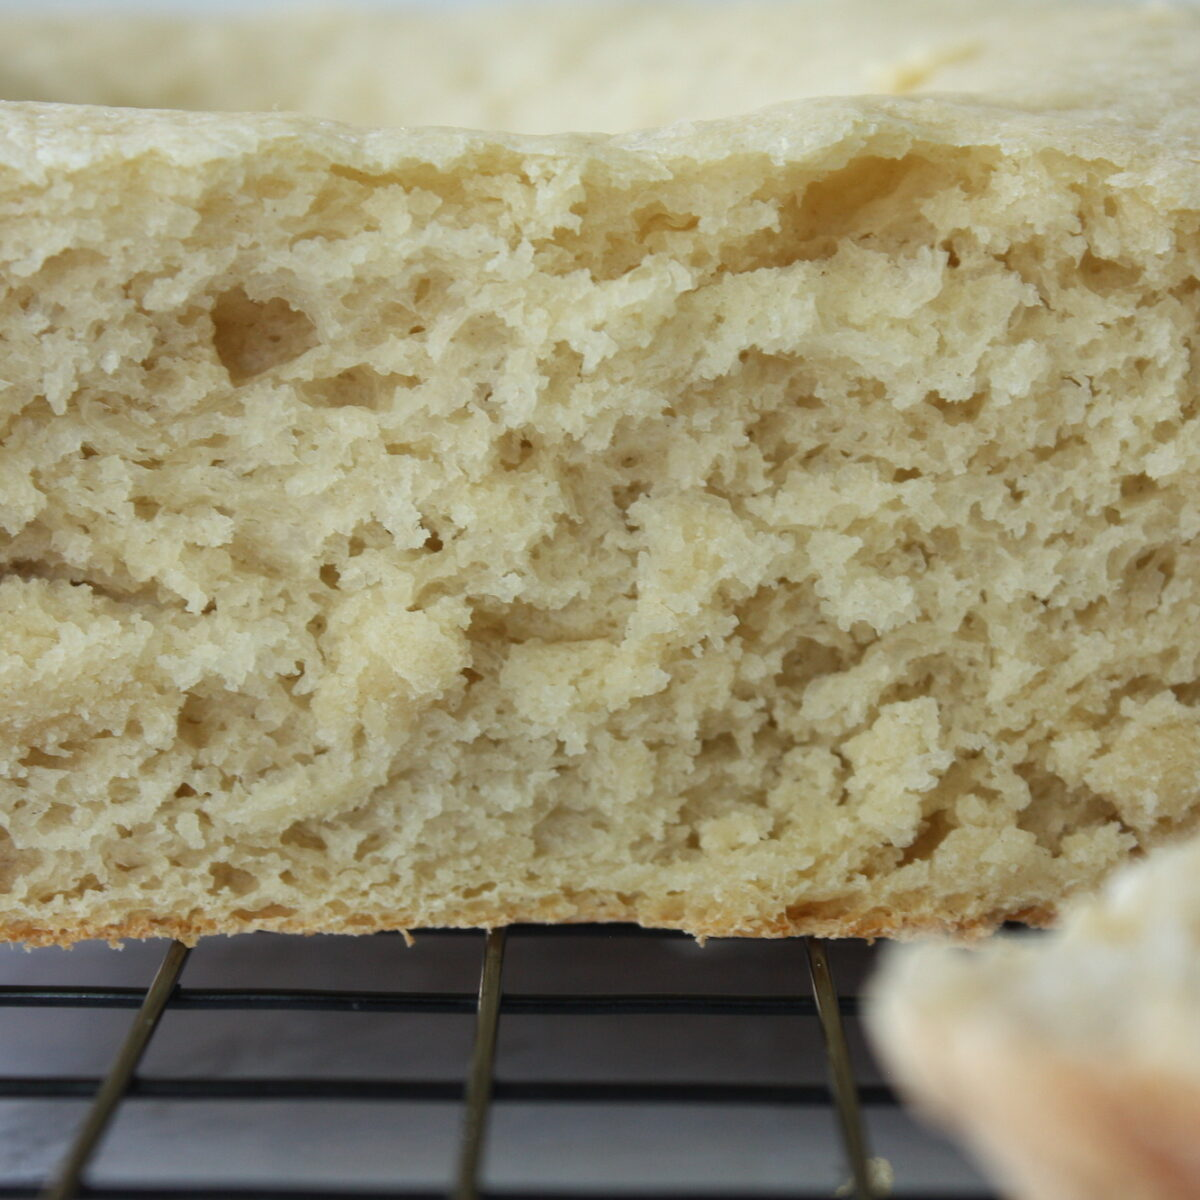 Close up image of slow cooker bread crumb